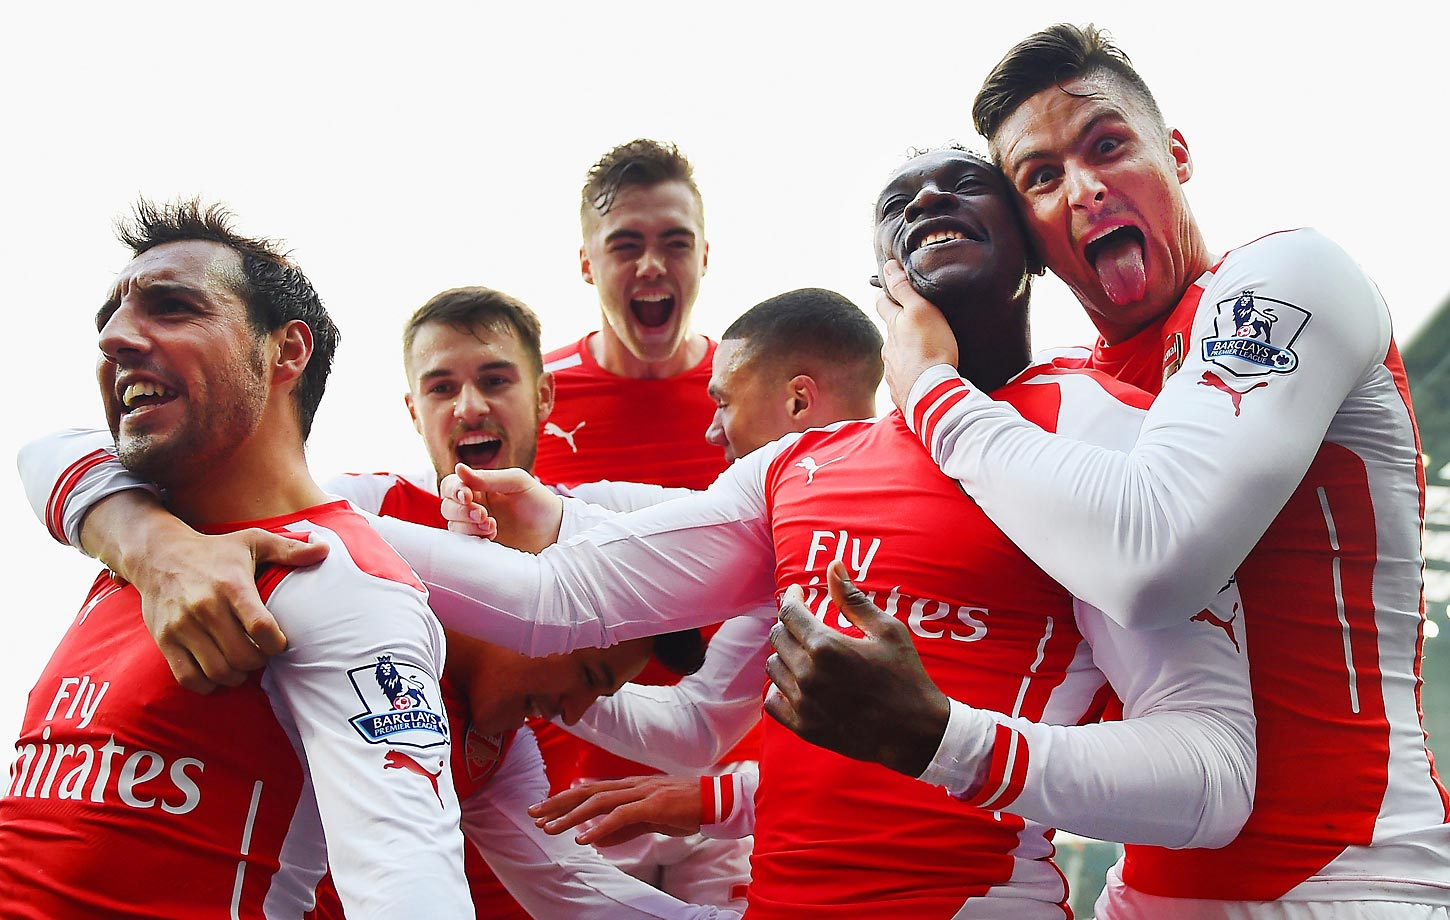 Danny Welbeck of Arsenal (2R) celebrates with team mates Olivier Giroud, Santi Cazorla, Calum Chambers and Aaron Ramsey of Arsenal as he scores their first goal during the Barclays Premier League match between West Bromwich Albion and Arsenal